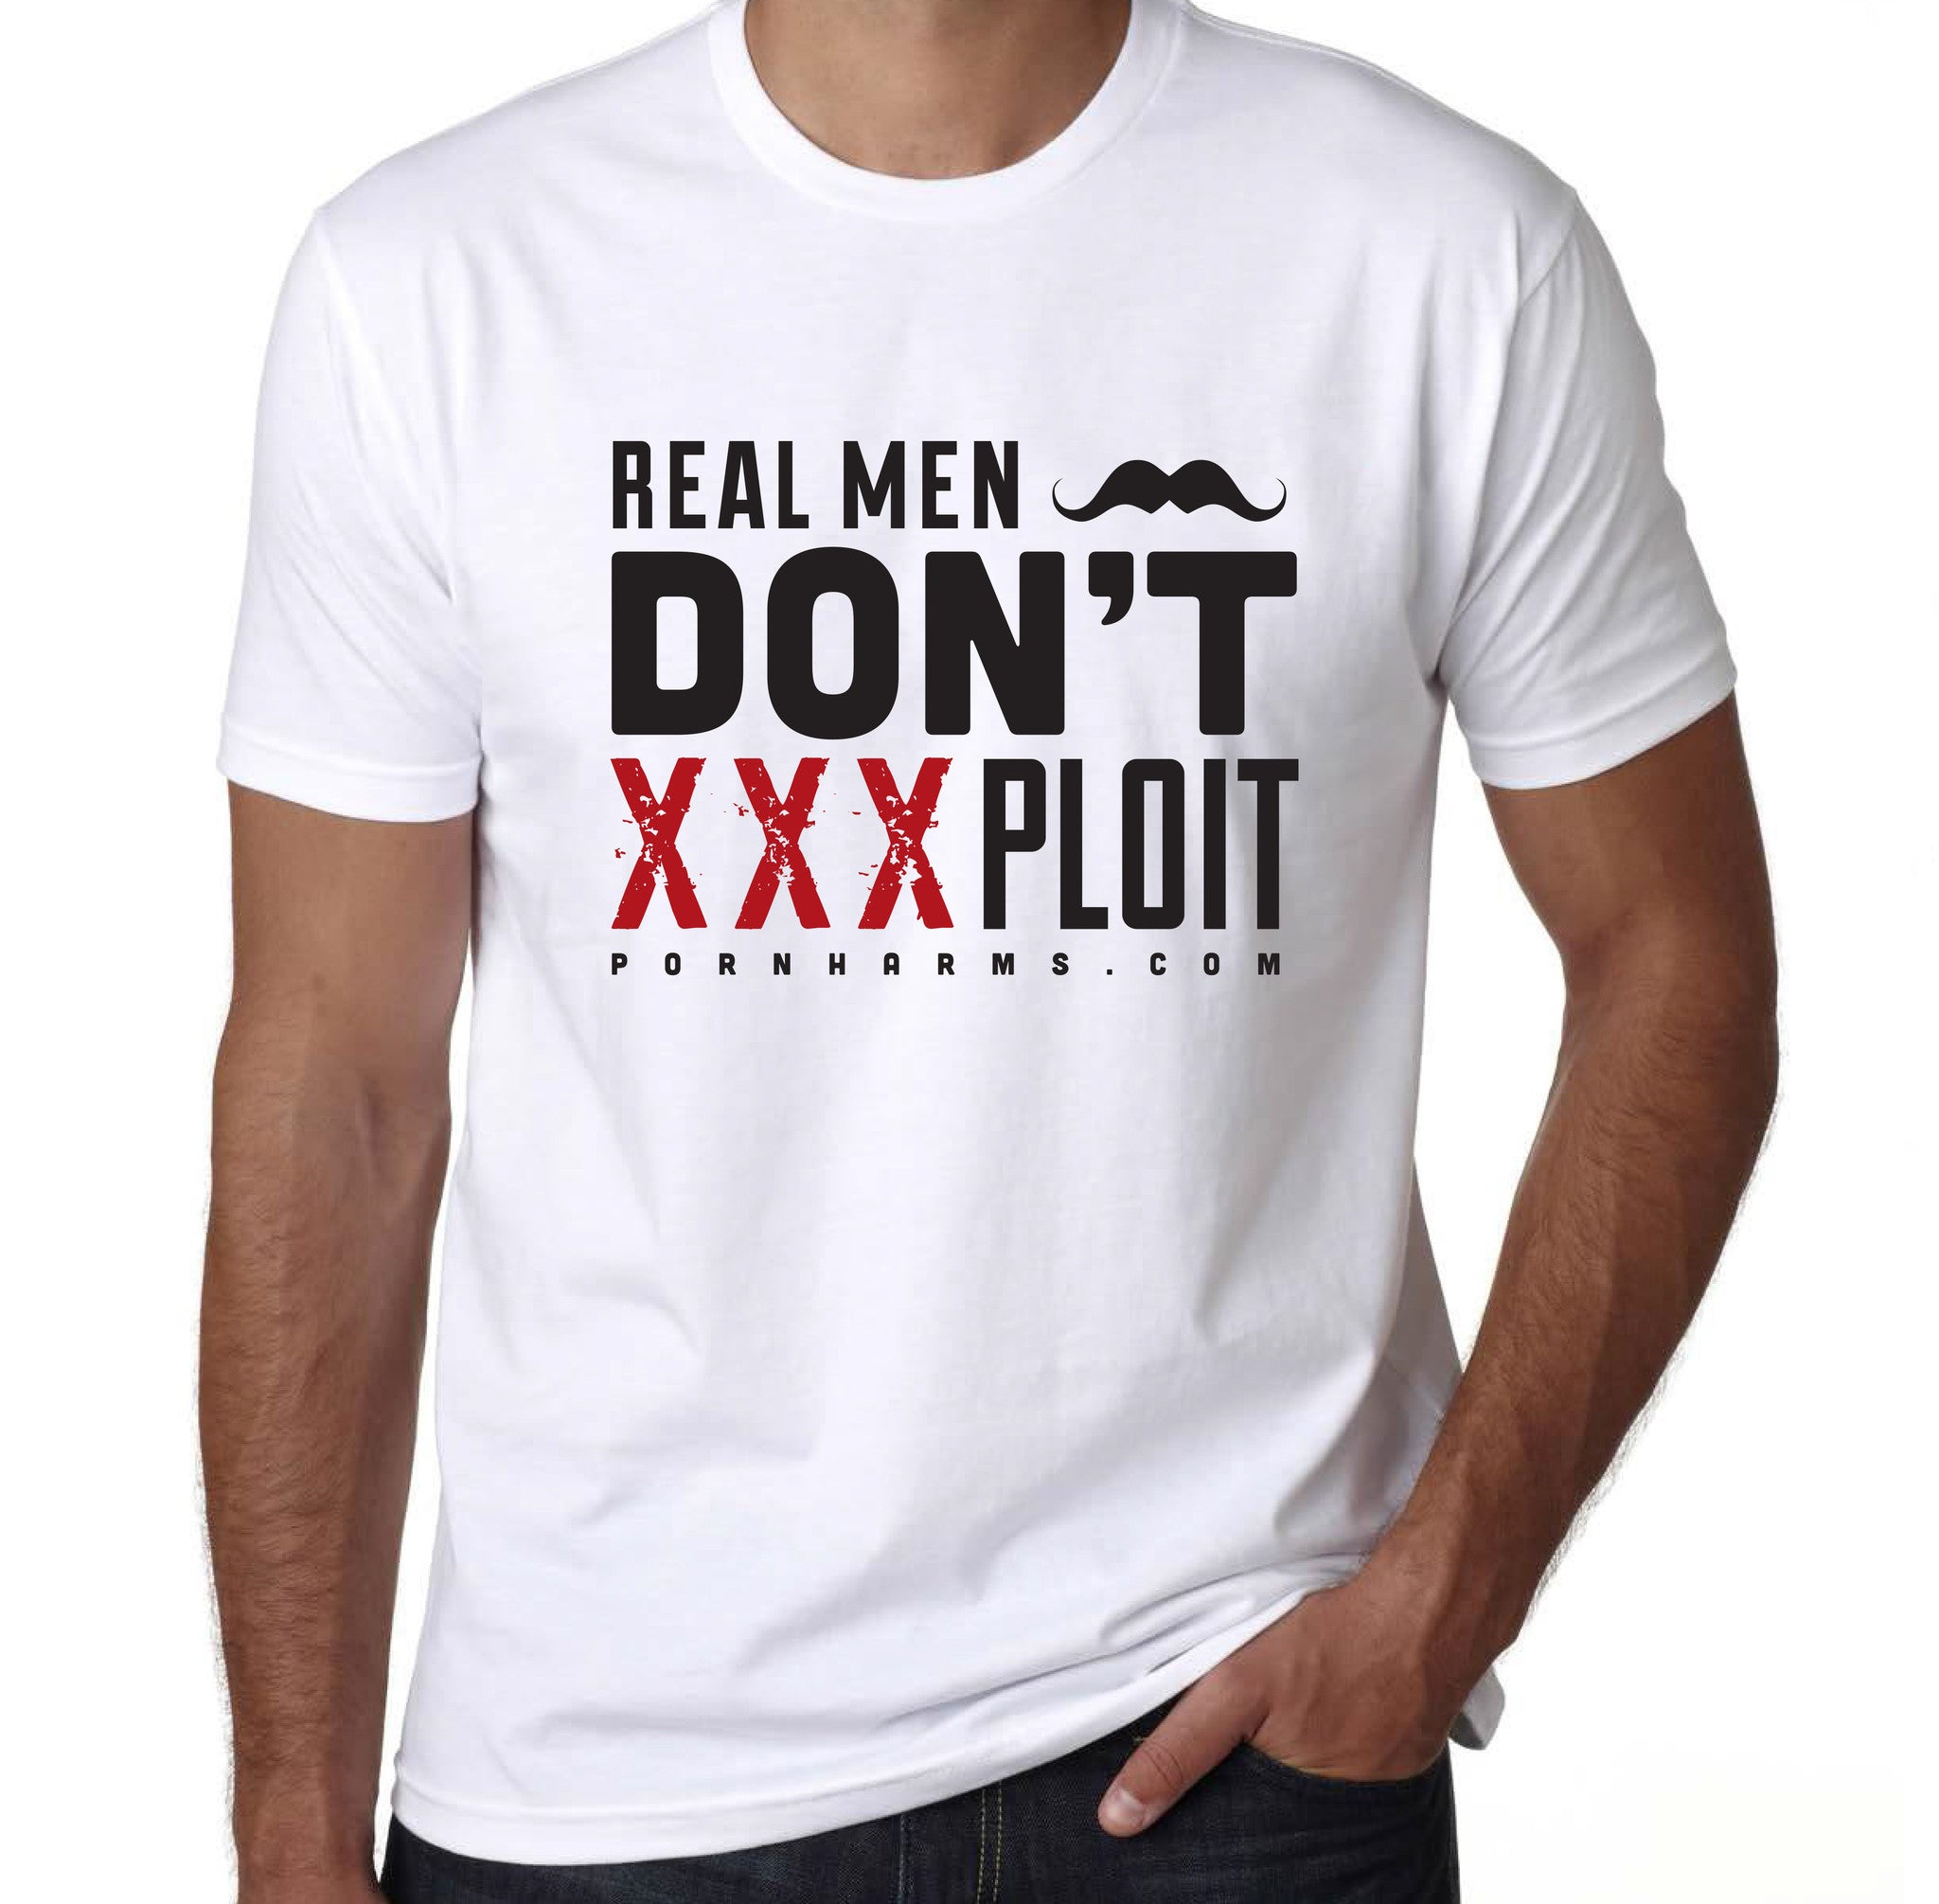 'Real Men Don't Exploit' Tee